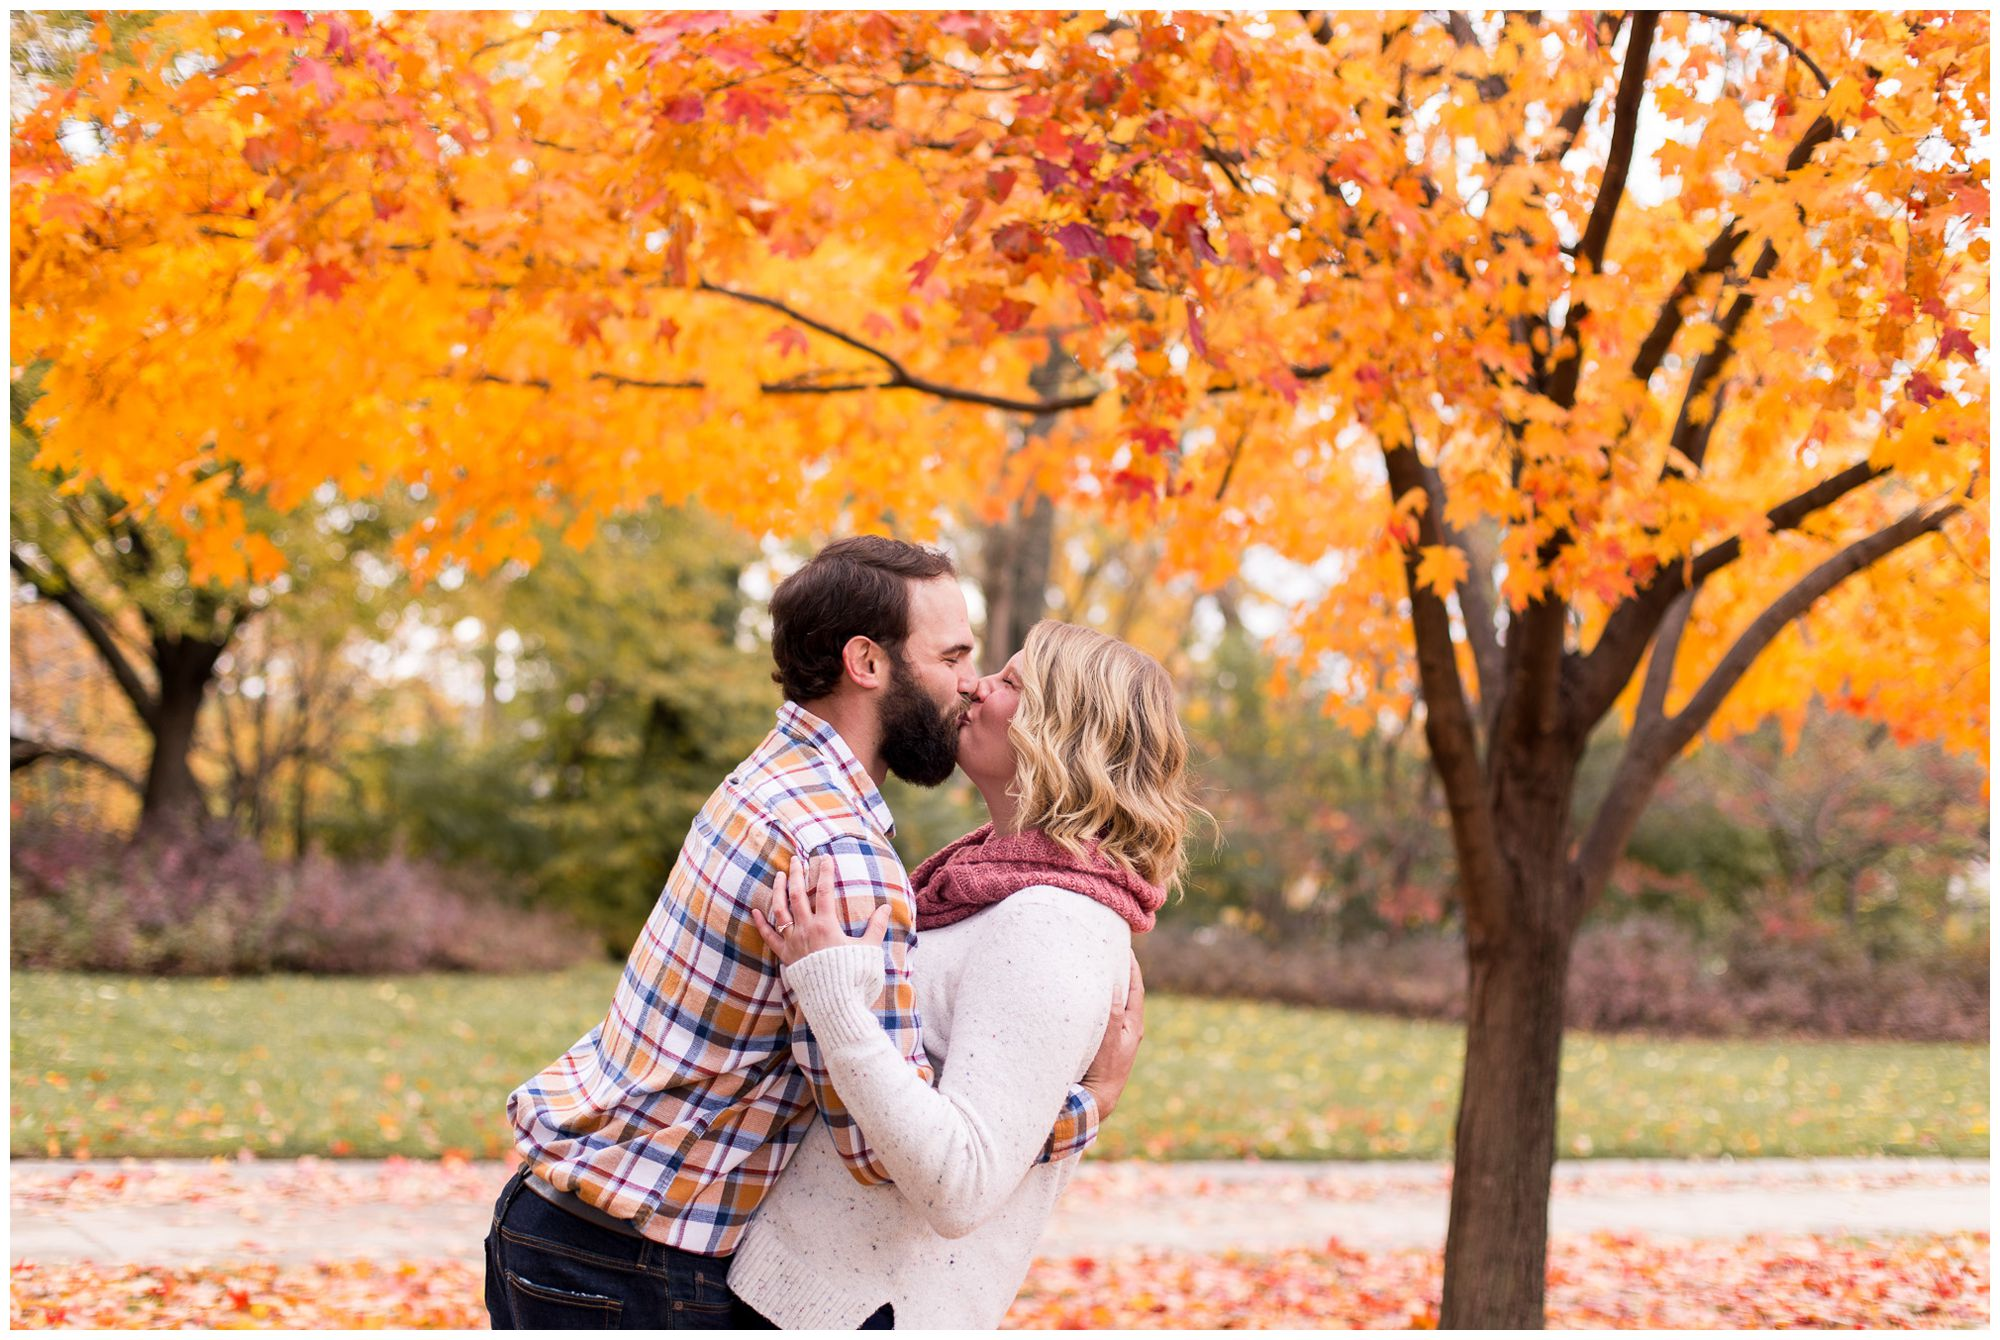 groom dips bride for kiss in front of fall foliage during engagement session at Headwaters Park